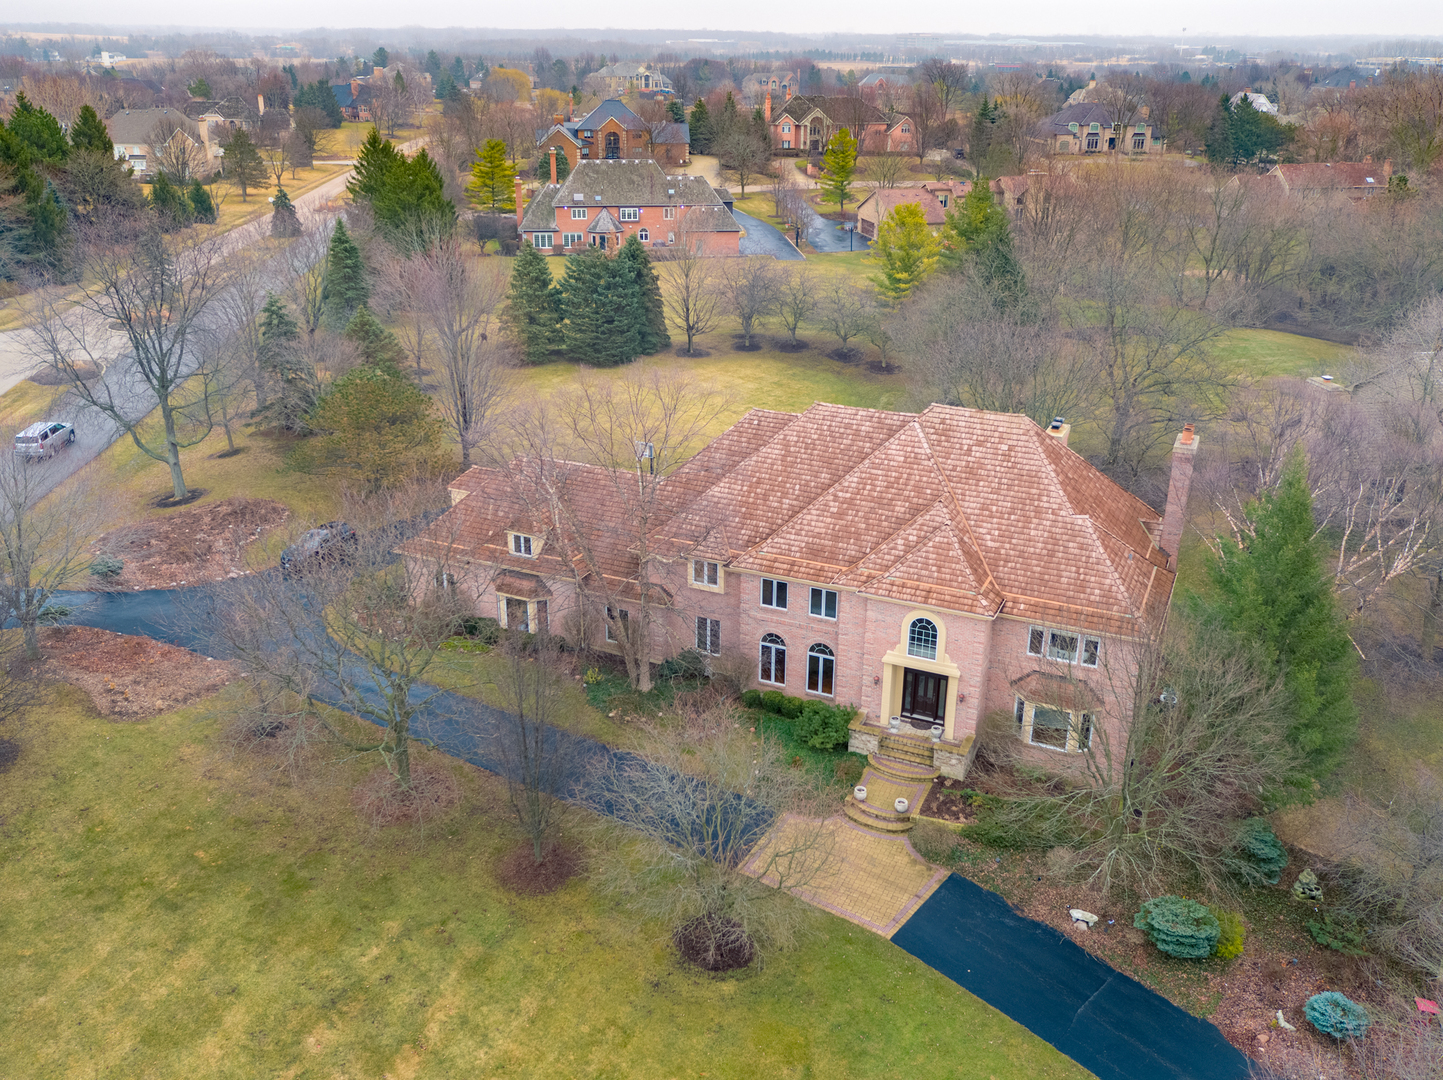 3 Ambrose Lane, South Barrington in Cook County, IL 60010 Home for Sale